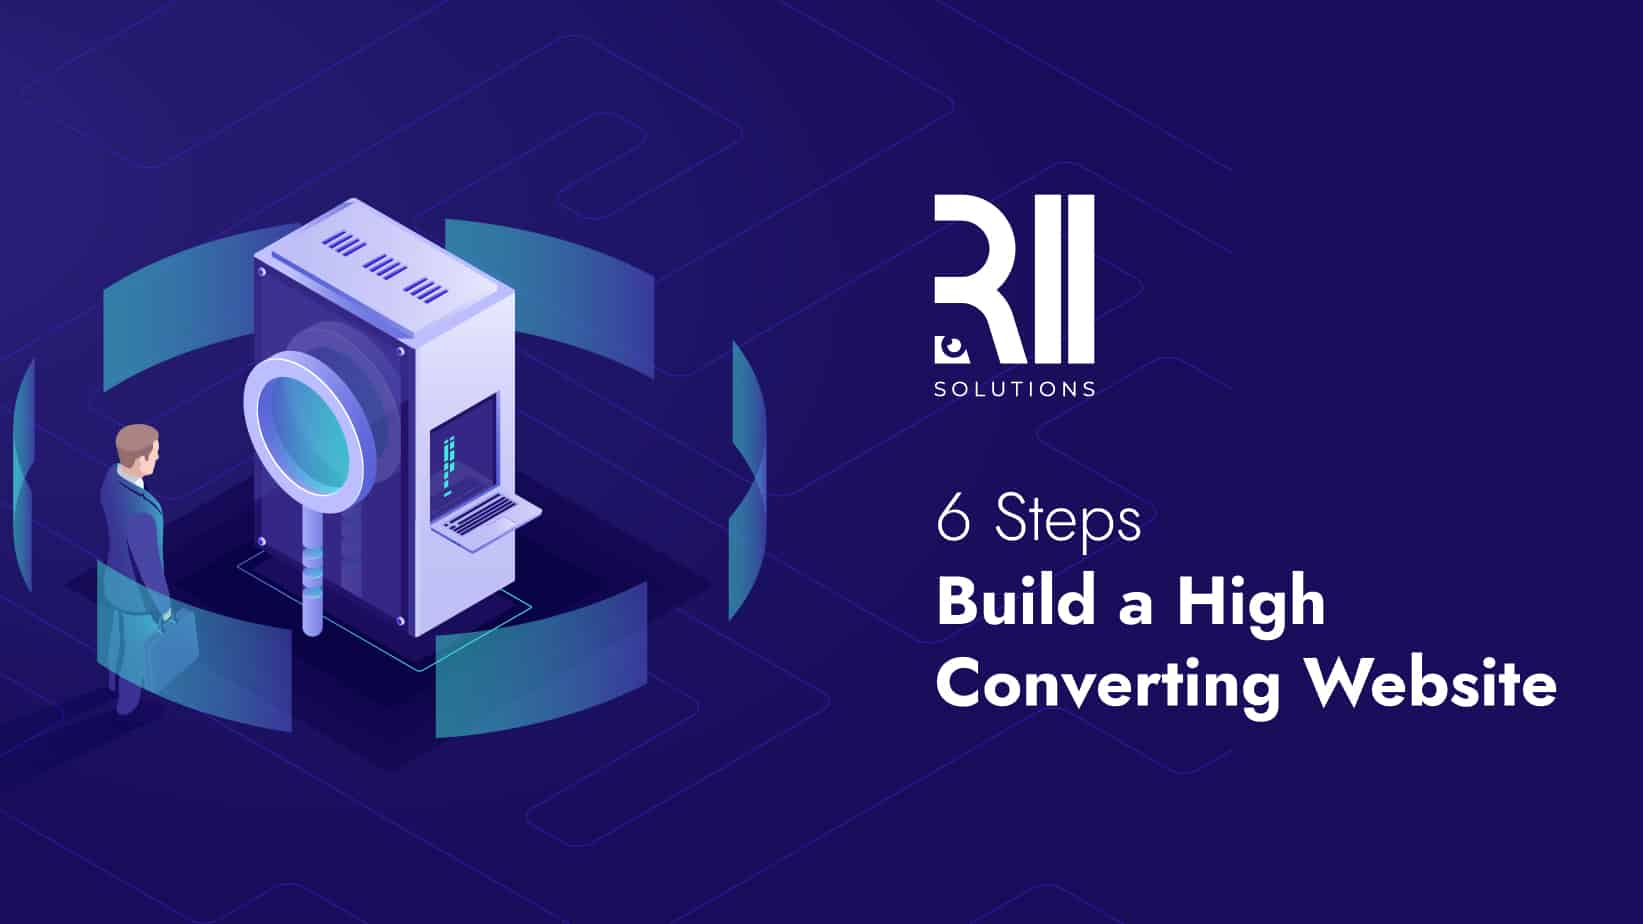 Build a High Converting Website in 6 Steps